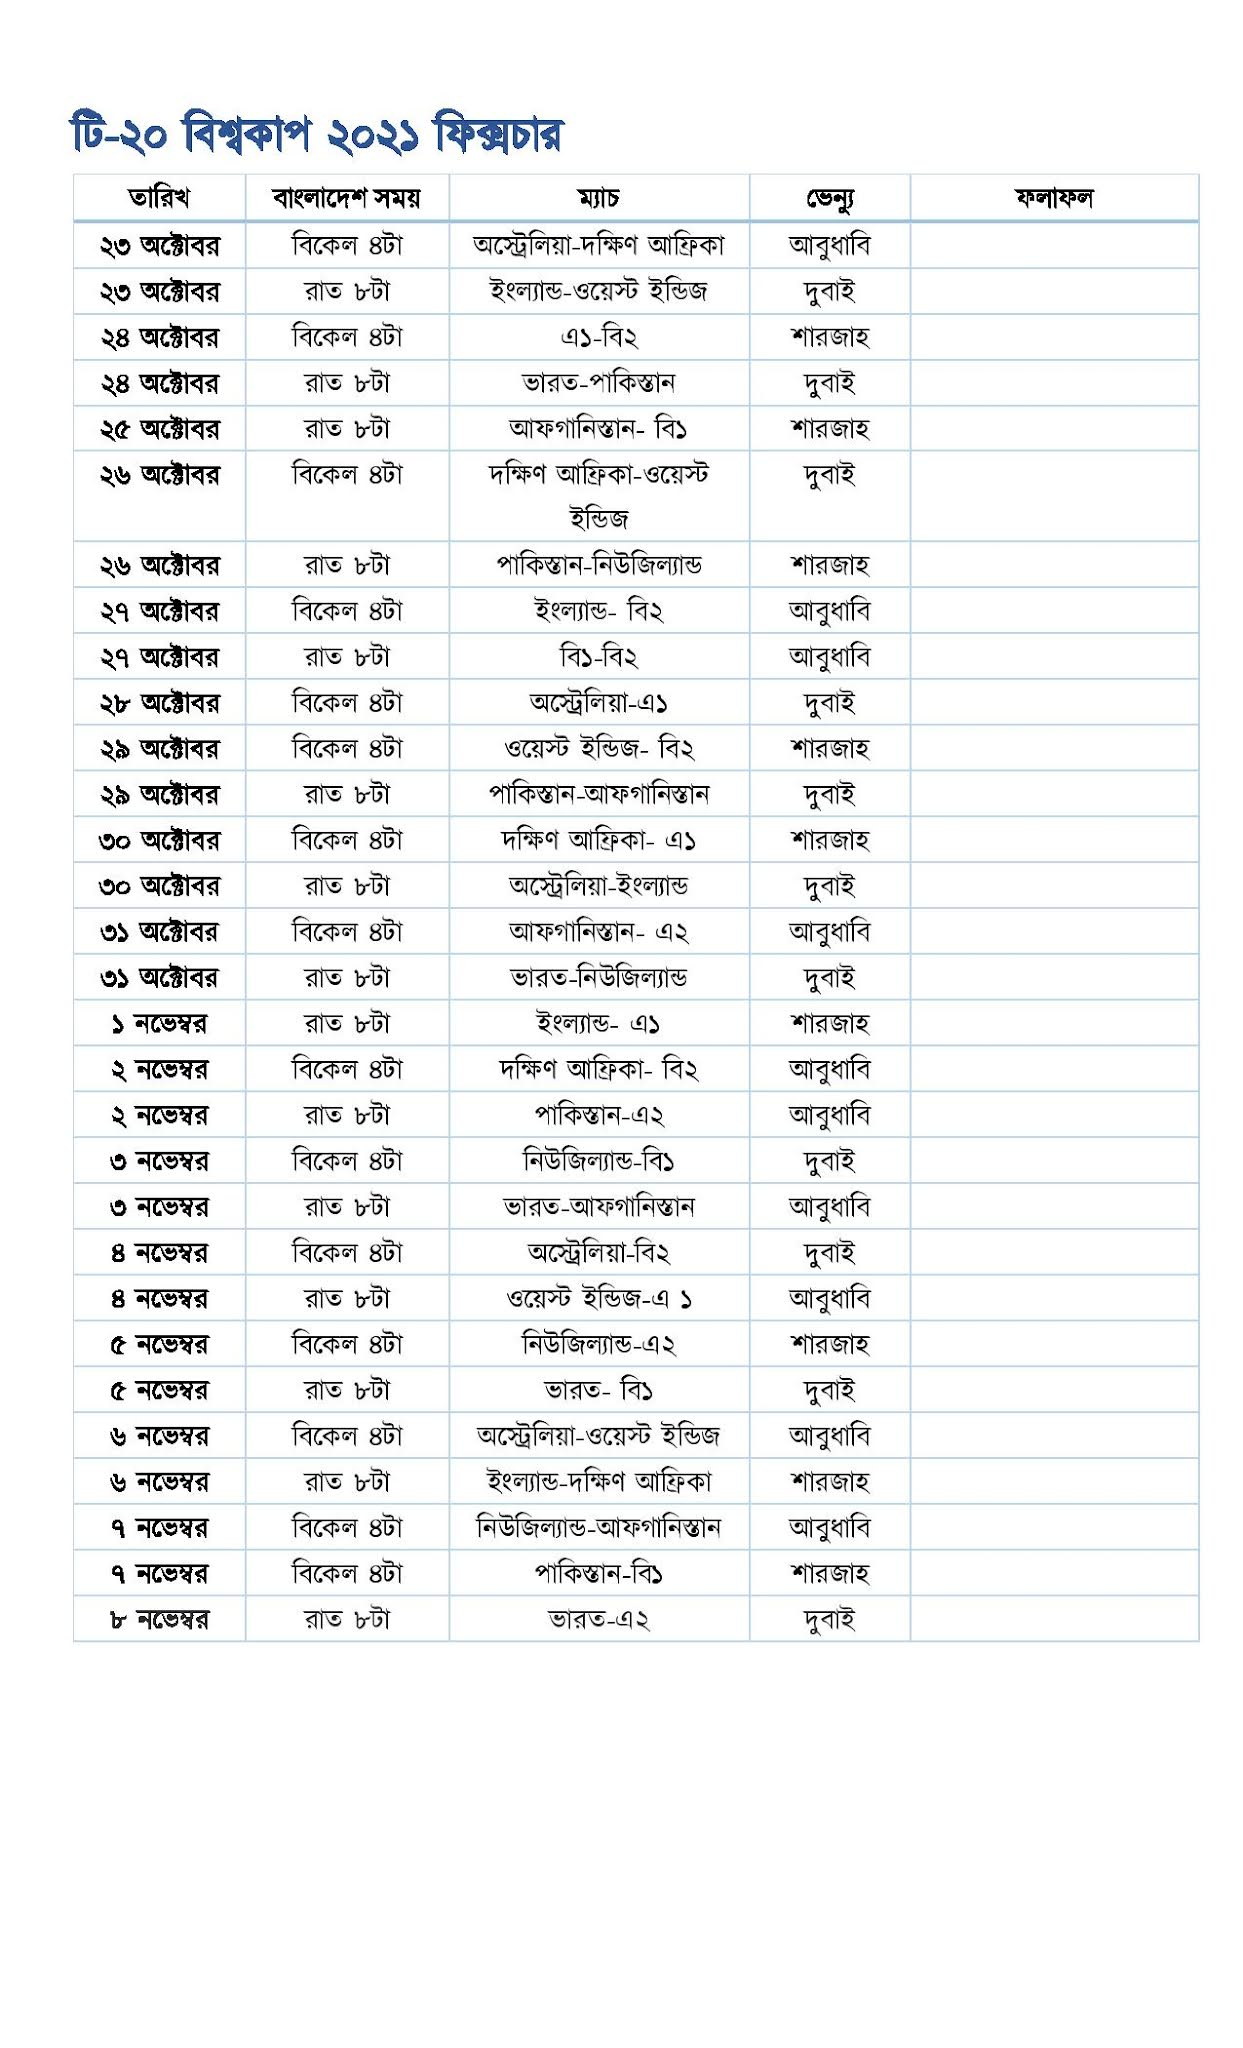 ICC T20 World Cup 2021 Fixtures PDF